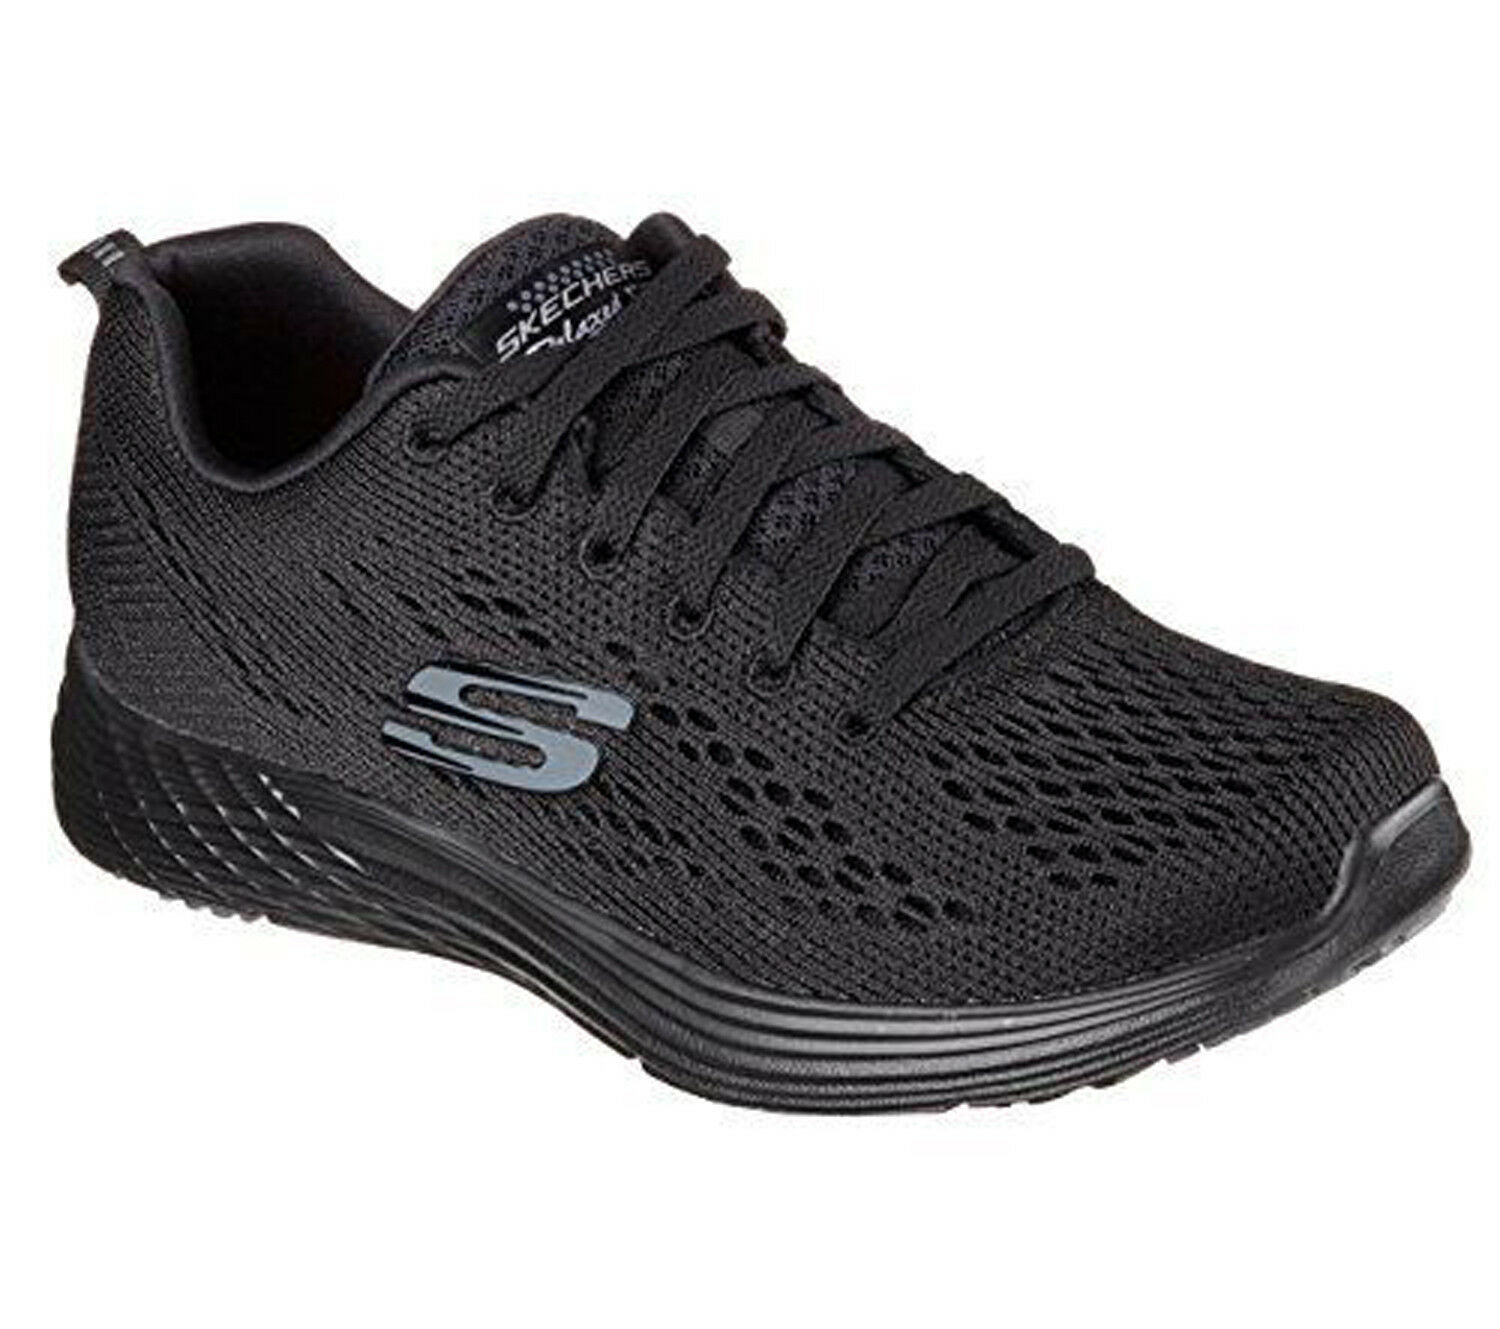 Skechers Relaxed Fit Valeris Valeris Valeris Backstage Pass Mujeres Negro Negro  alta calidad